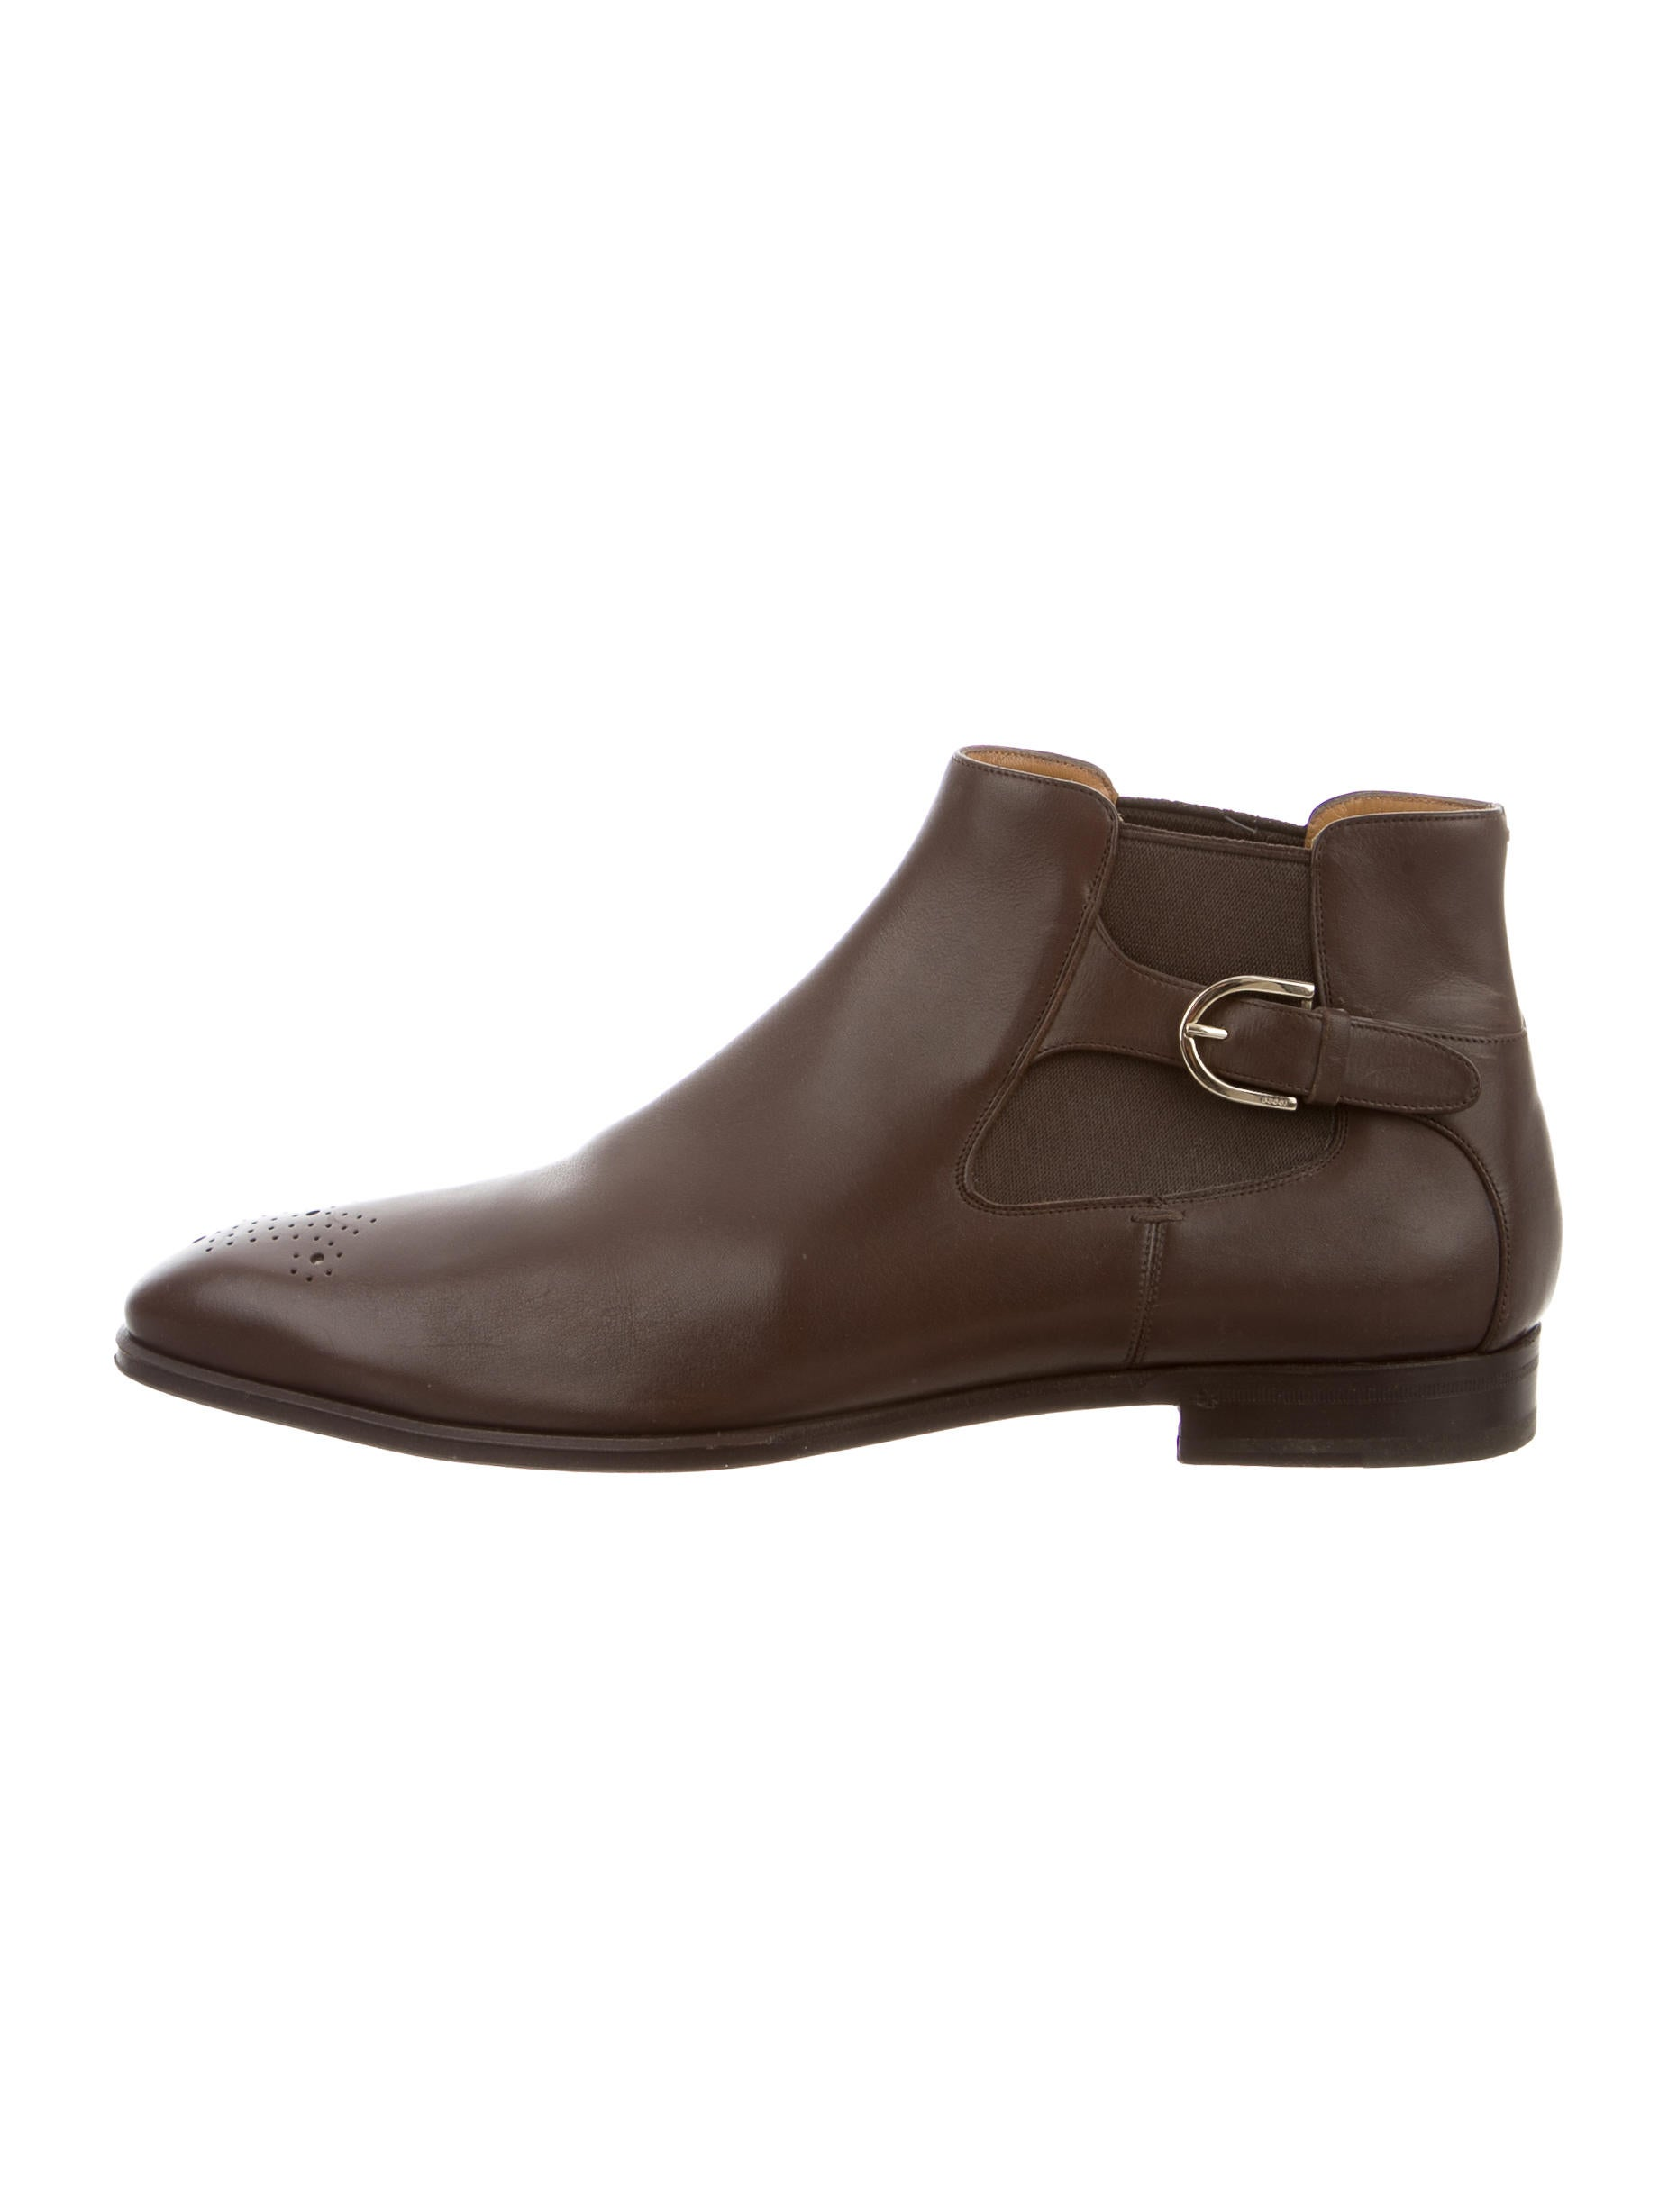 gucci pointed toe chelsea boots shoes guc110975 the